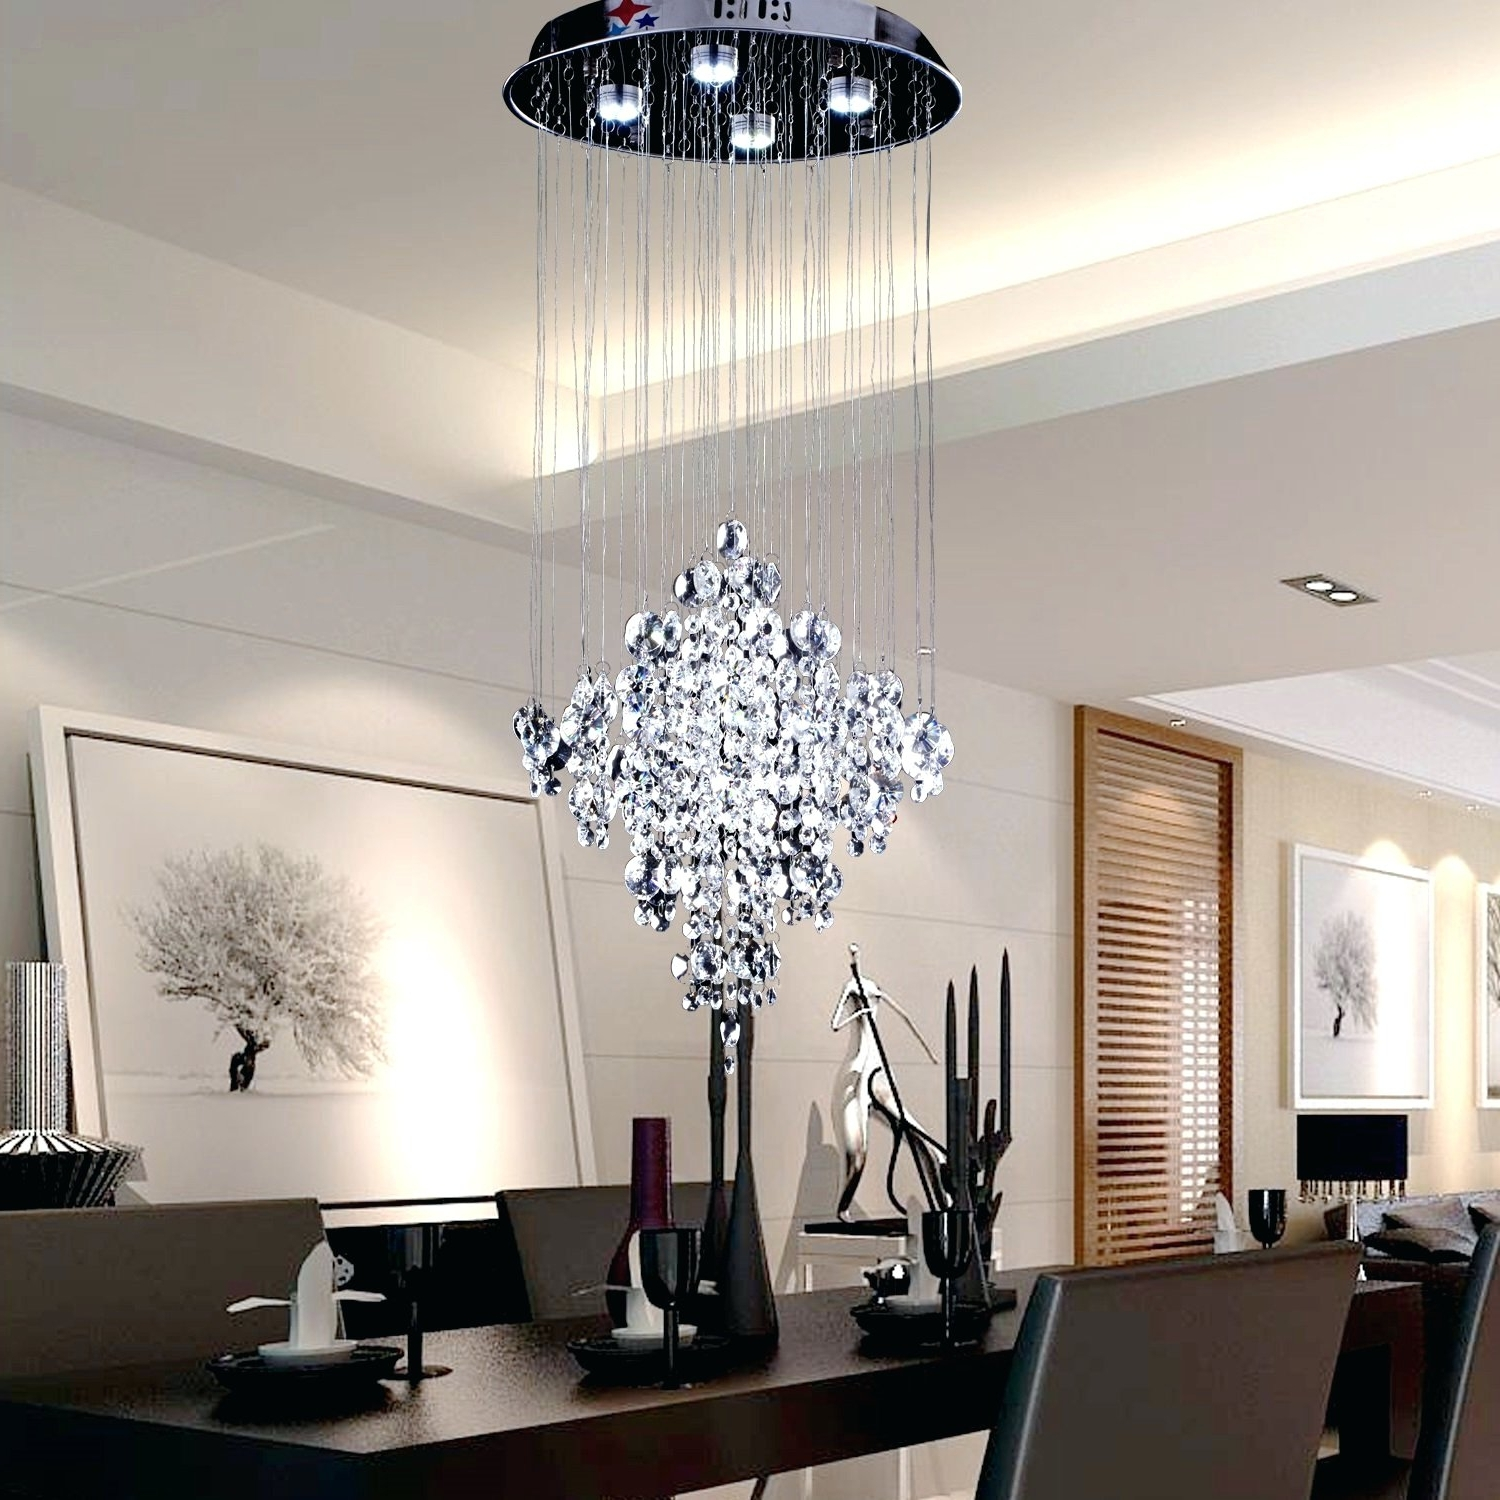 2017 Chandeliers Design : Fabulous Large Modern Chandeliers Contemporary Inside Large Modern Chandeliers (View 11 of 15)